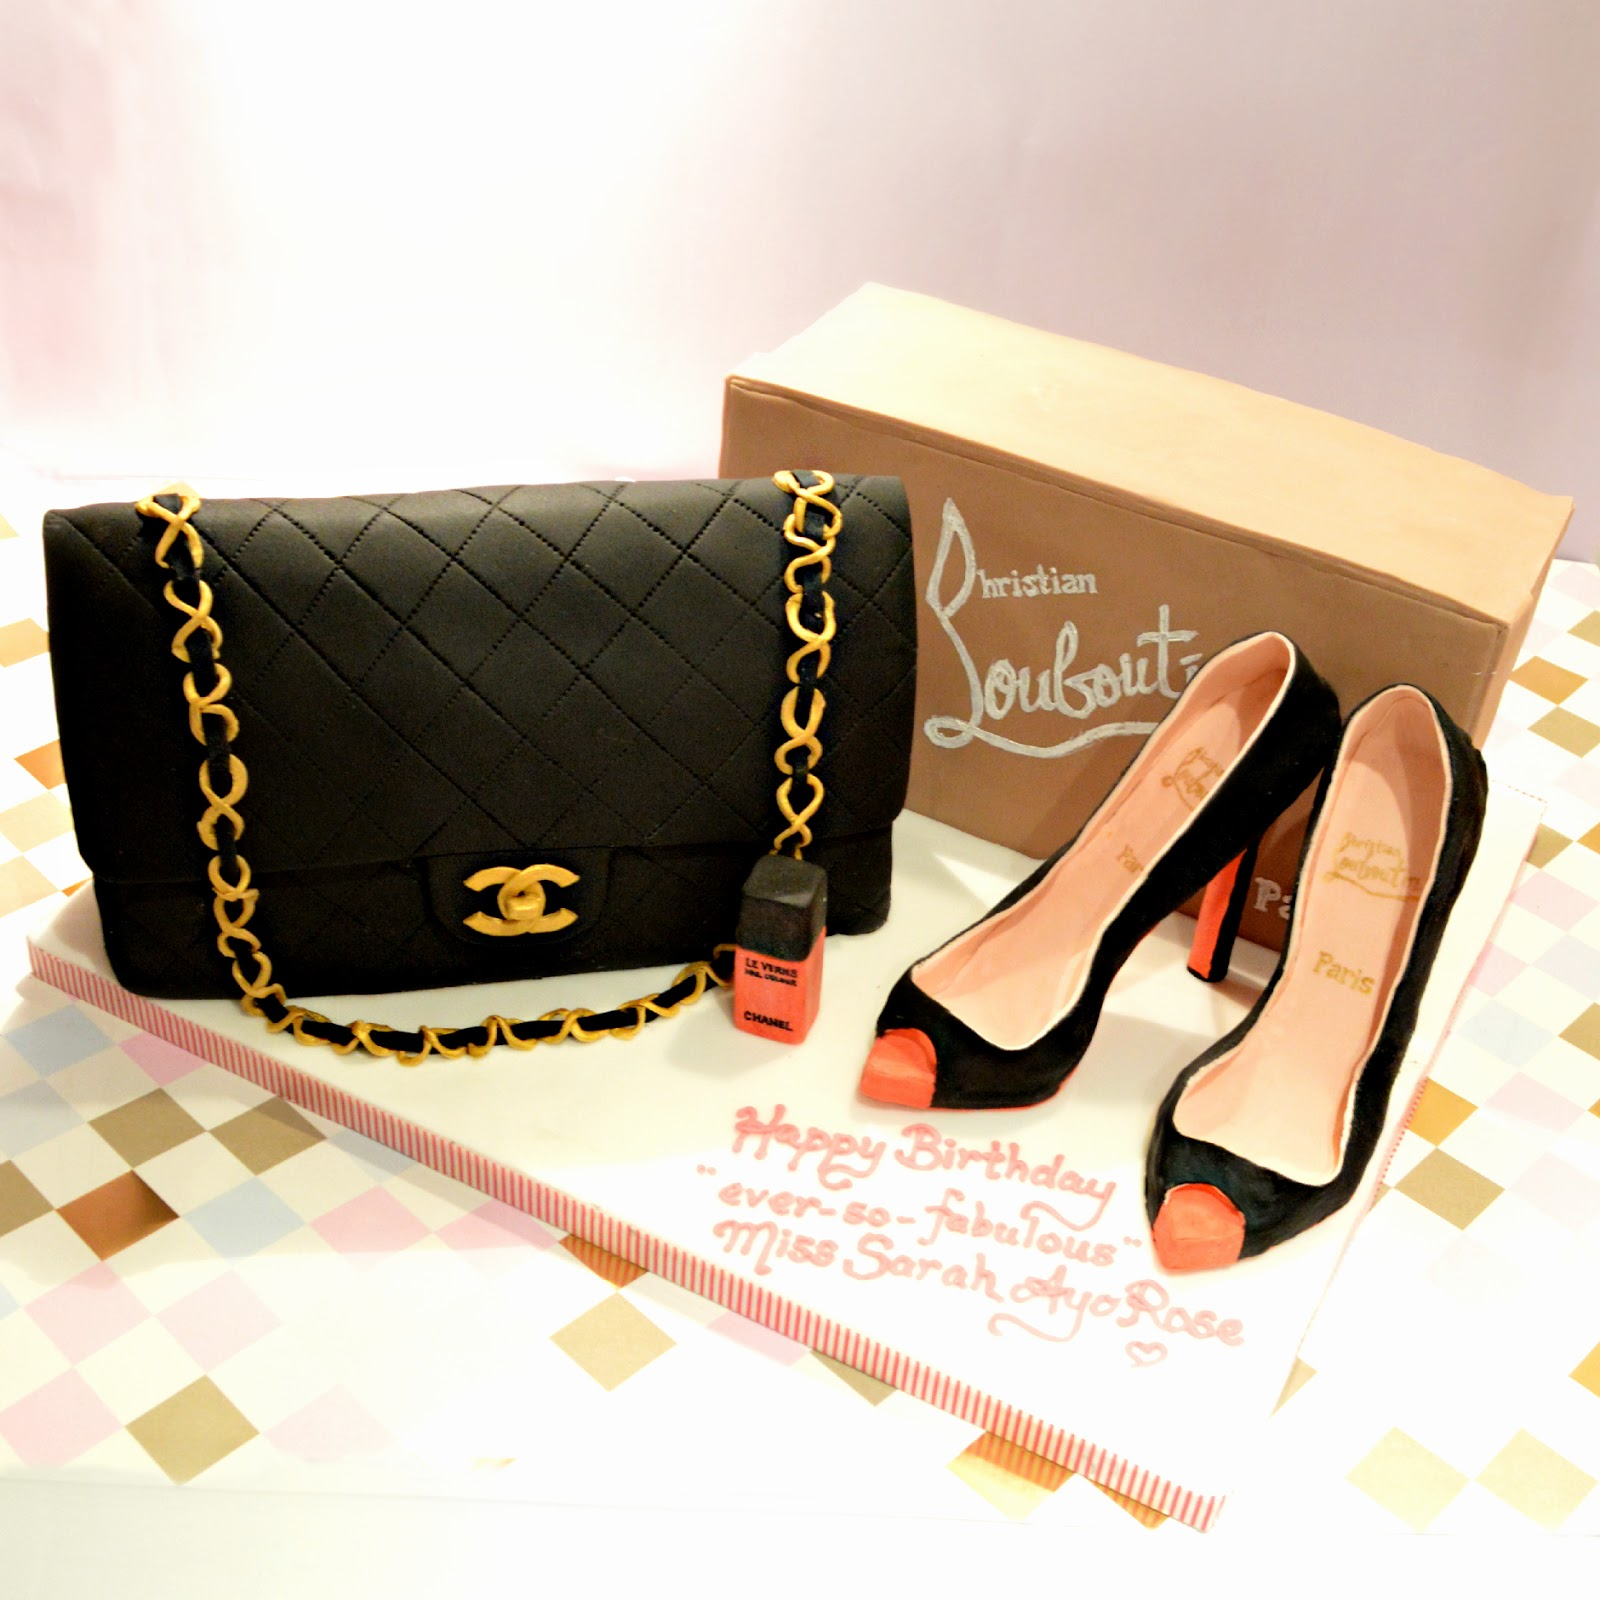 Cherie Kelly's Chanel Handbag and Louboutin High Heels Shoe Cake